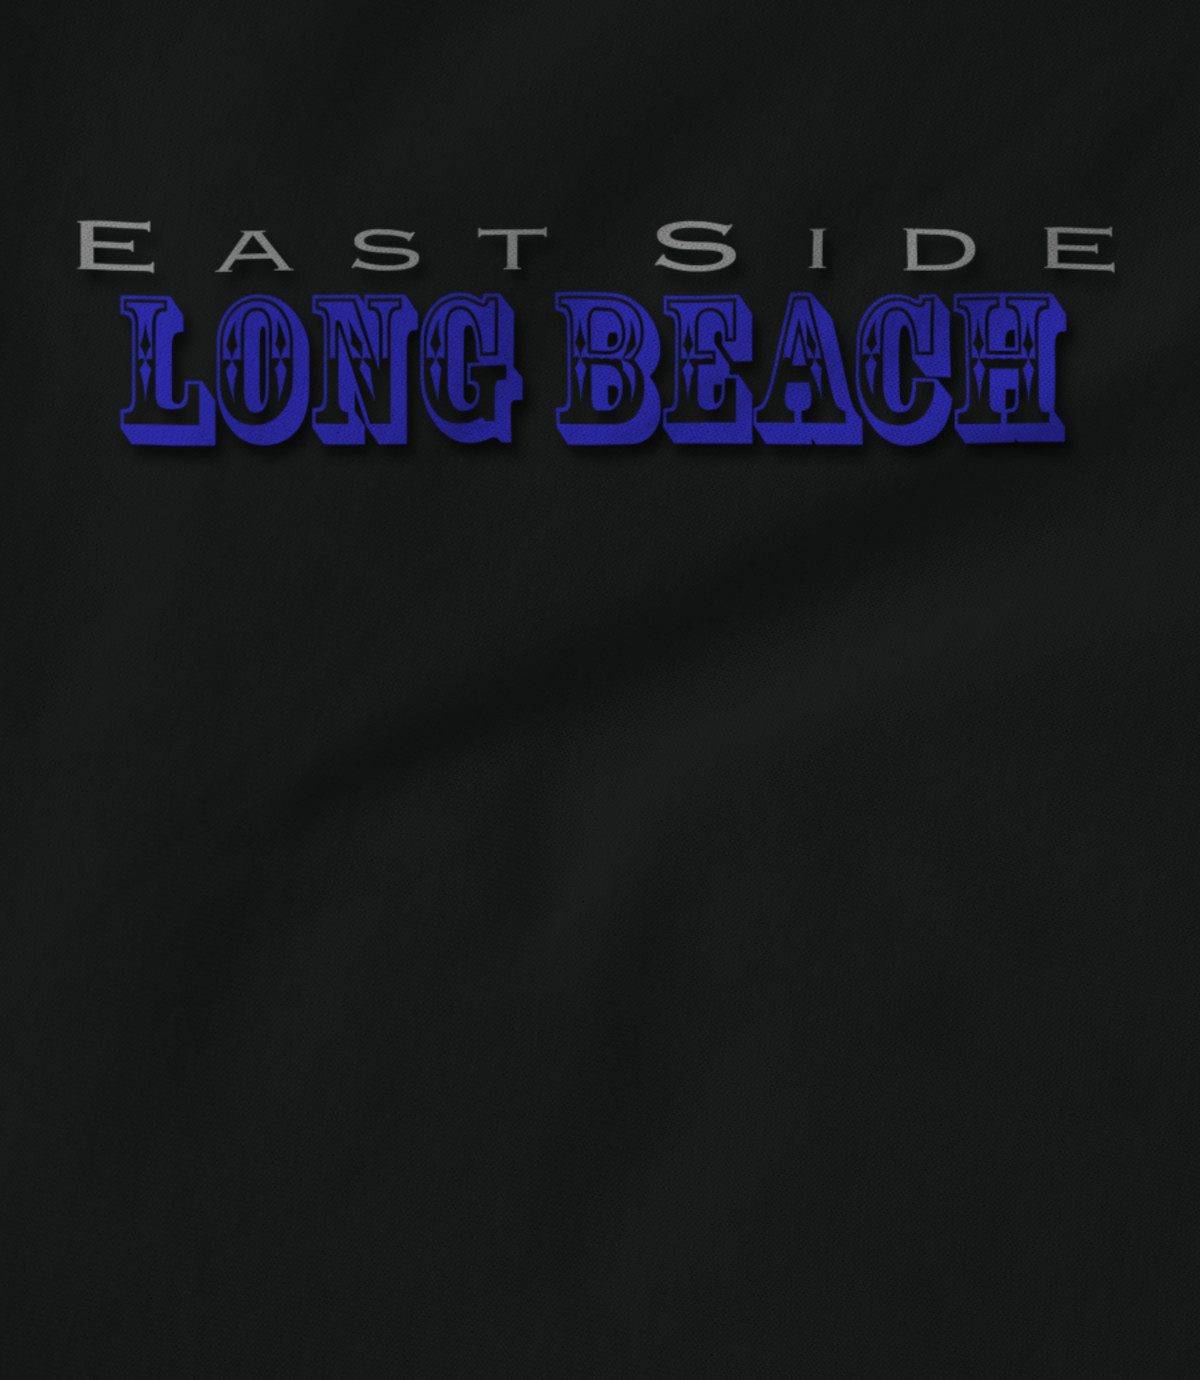 Tmsd east side long beach 1543863341